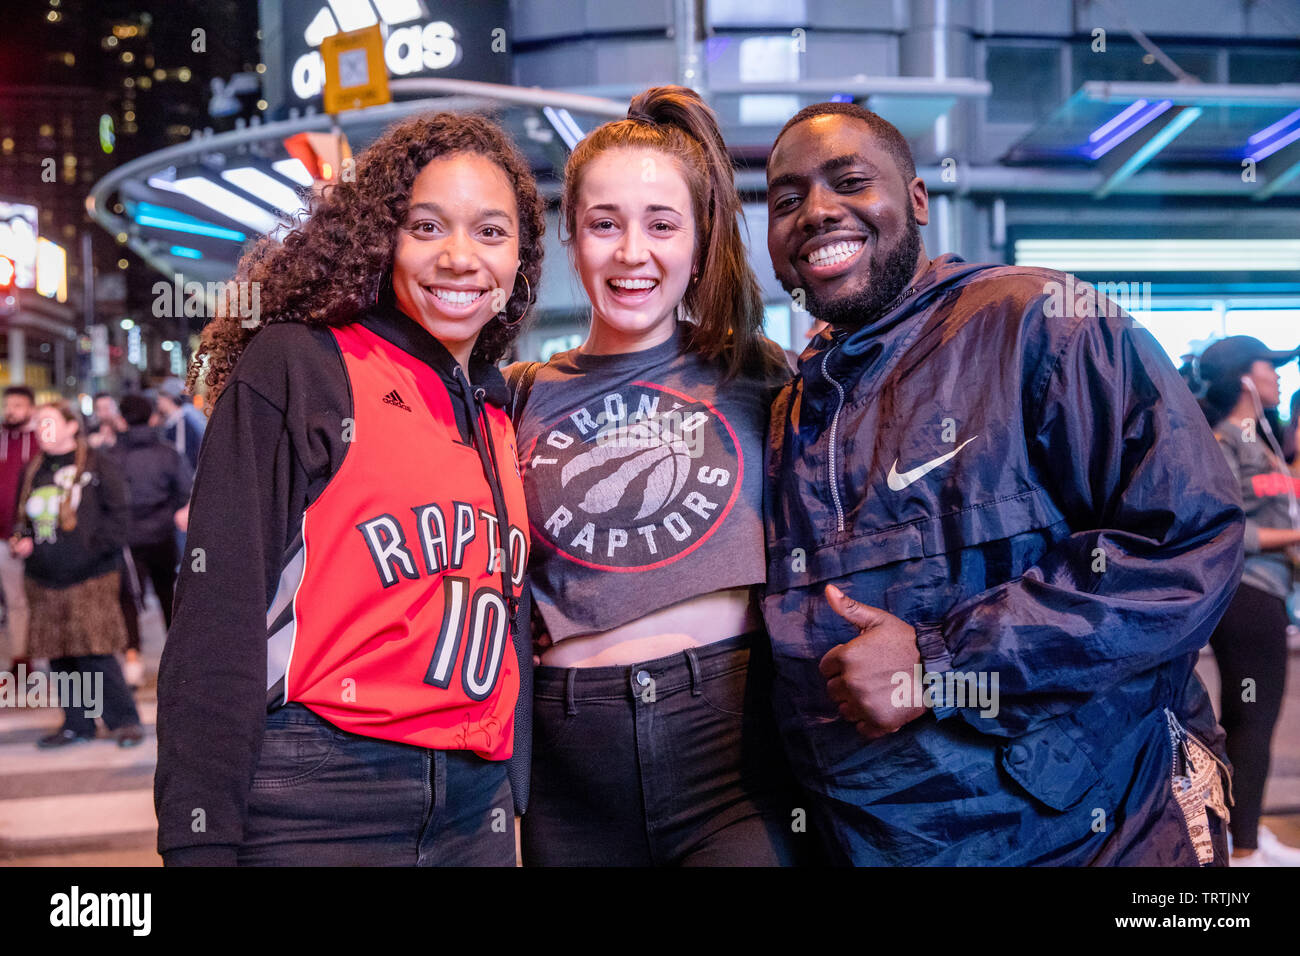 TORONTO, CANADA - JUNE 10, 2019: TORONTO RAPTORS FANS TAKE TO THE STREETS AFTER GAME 5 LOSS TO GOLDEN STATE WARRIORS. - Stock Image